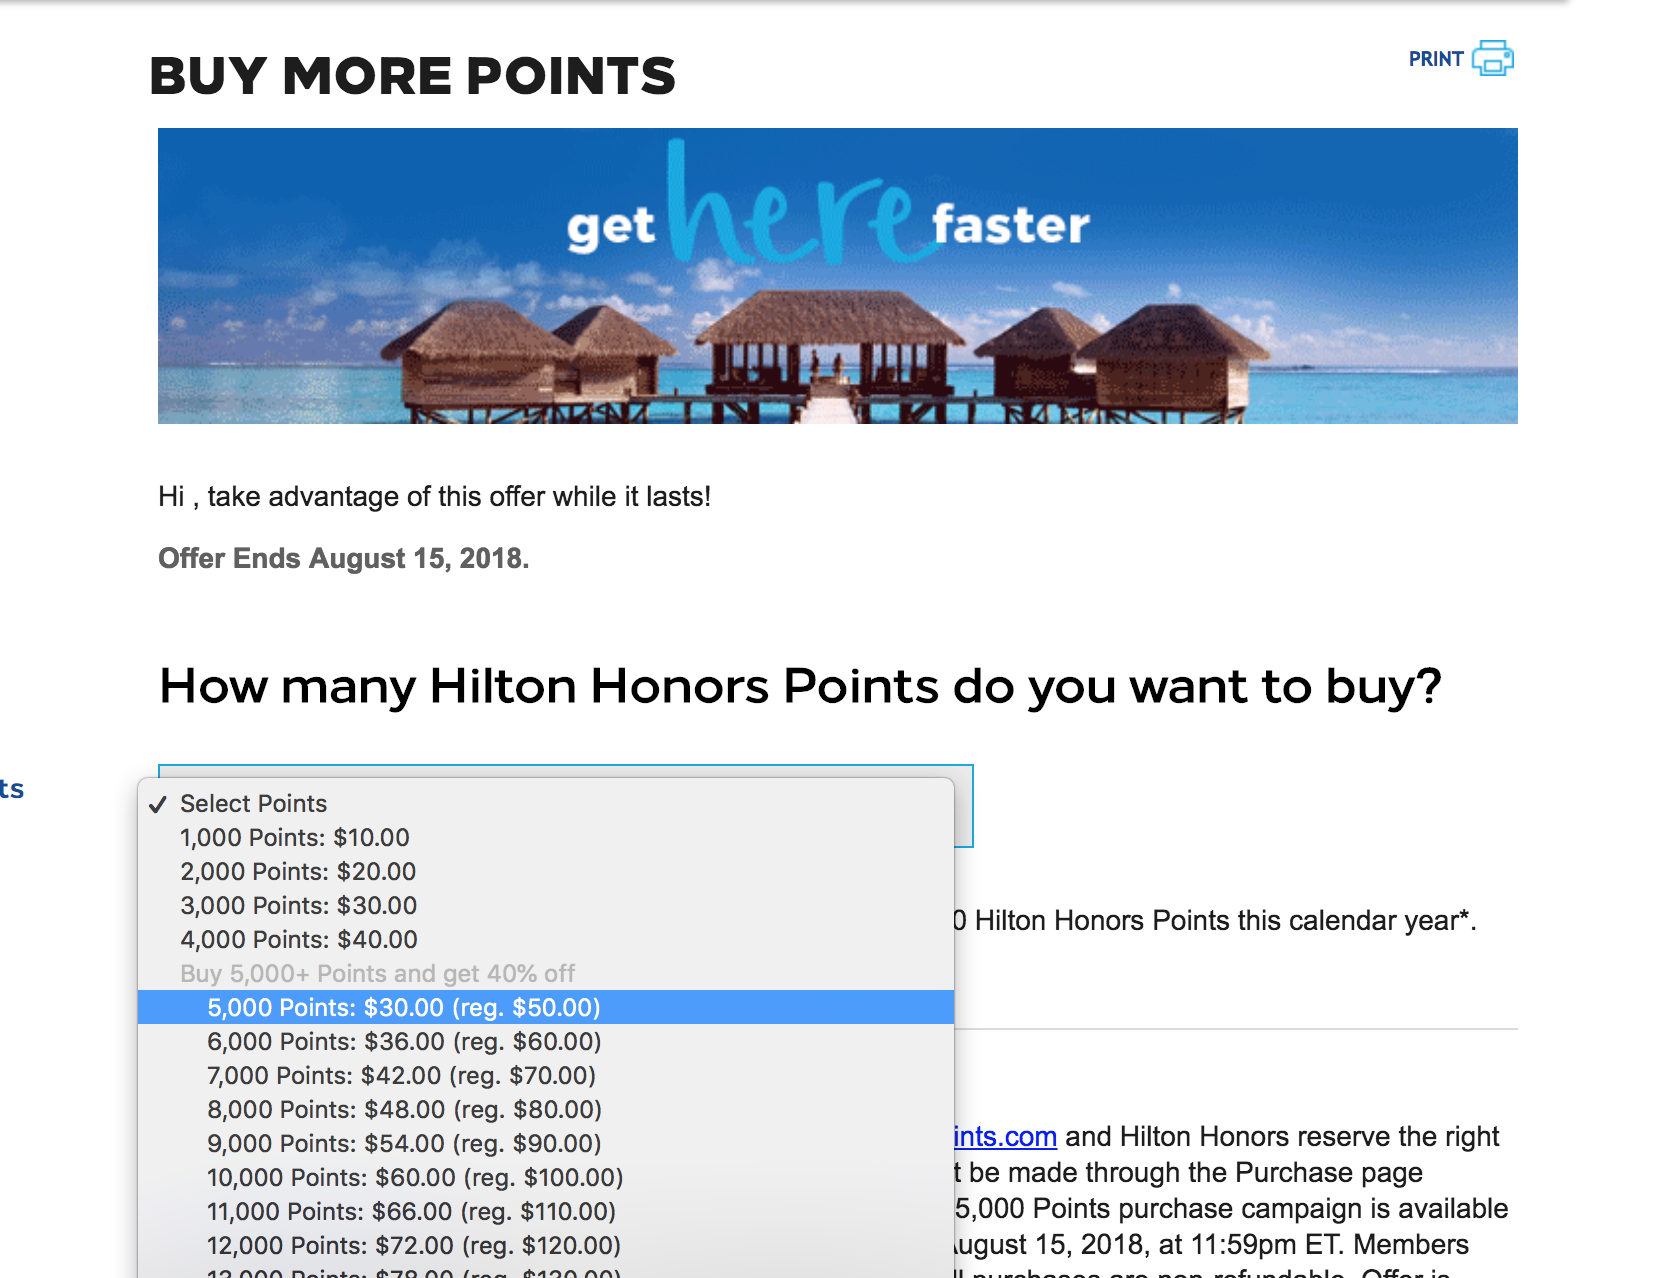 Top Up Your Points Account By Purchasing Points From Hilton's Website. Until August 15th You Can Save 40% on Point Purchases Over 5,000 Hilton Points.